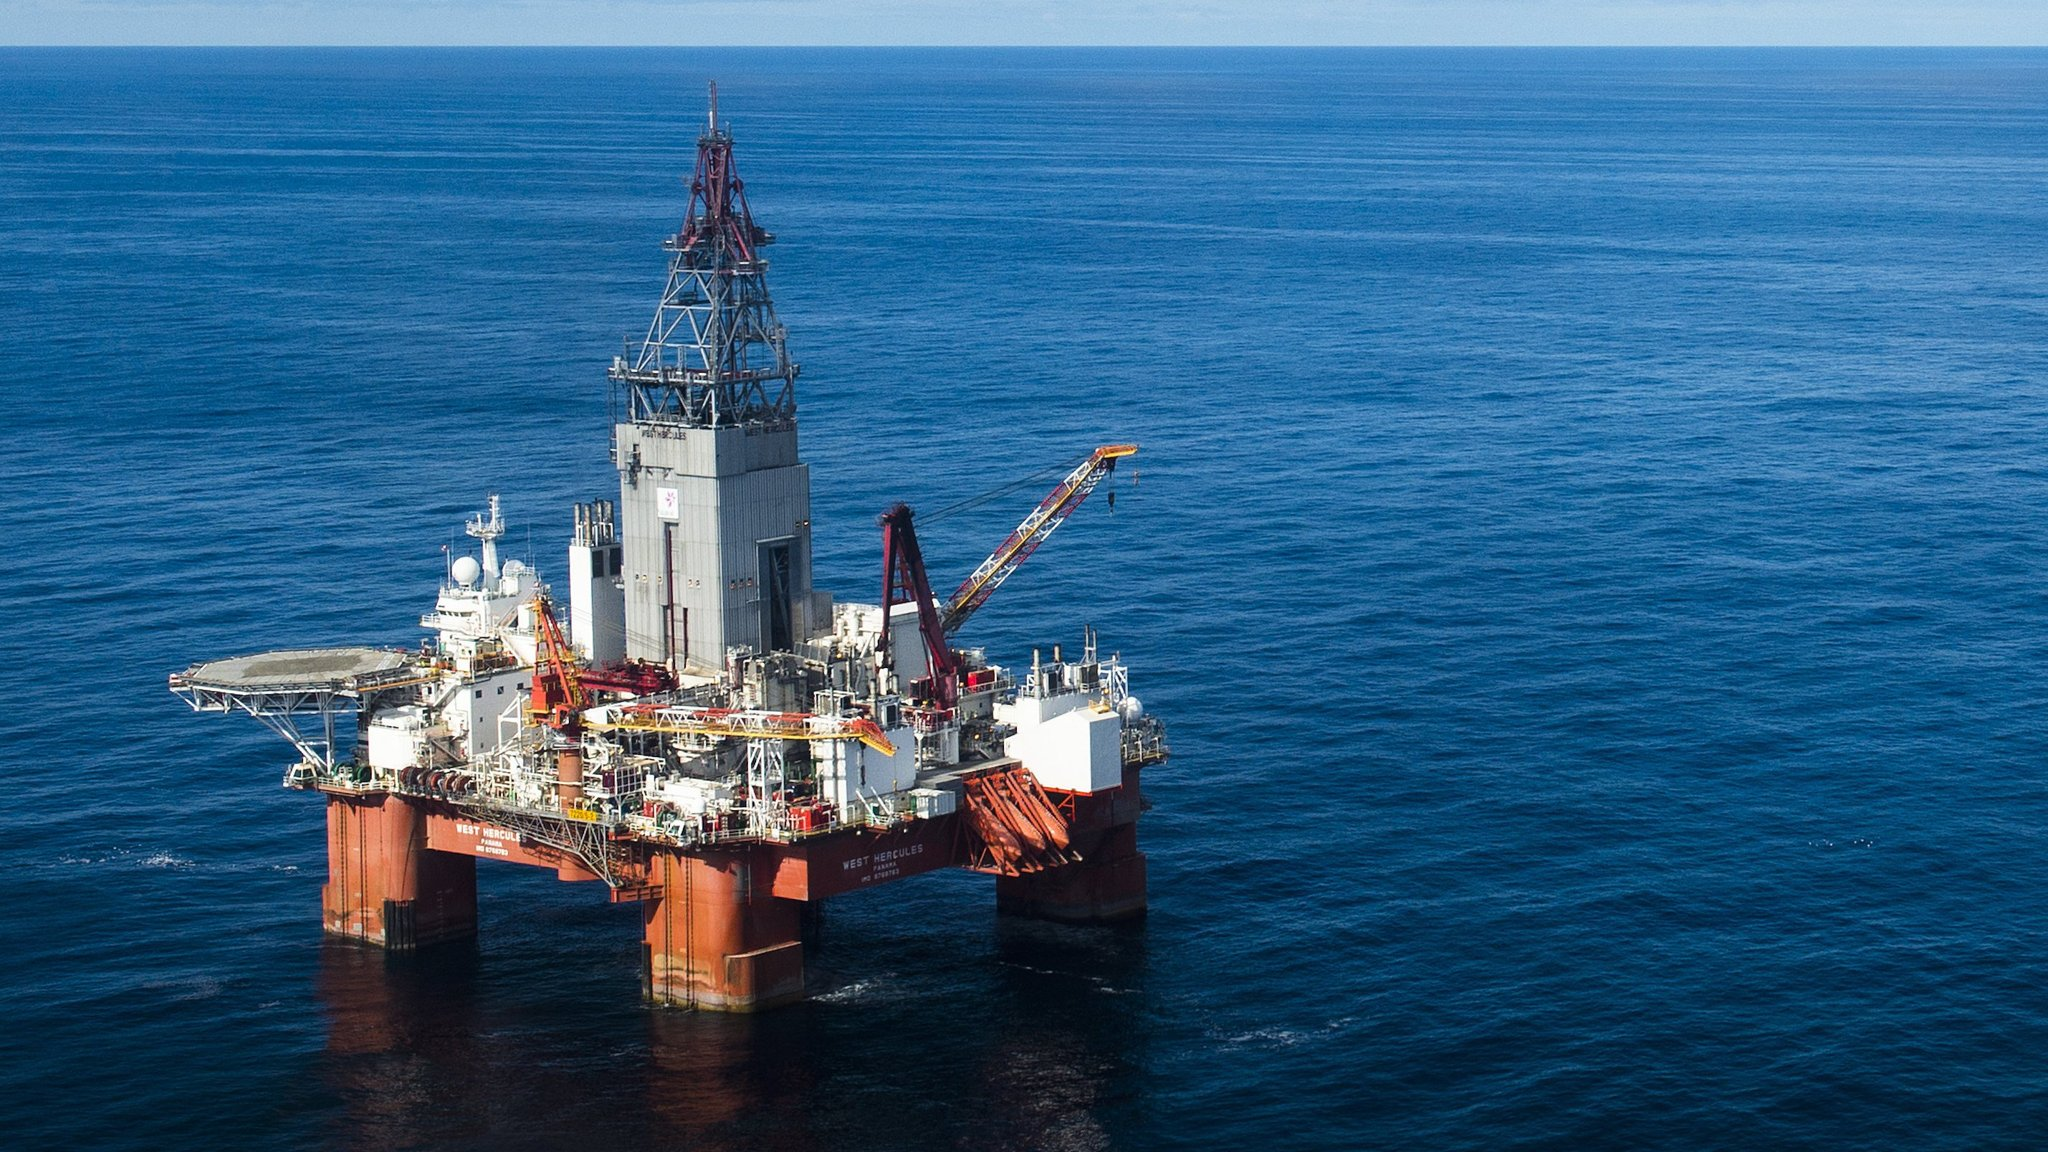 Statoil and ConocoPhillips to cut capital spending Financial Times 2048x1152